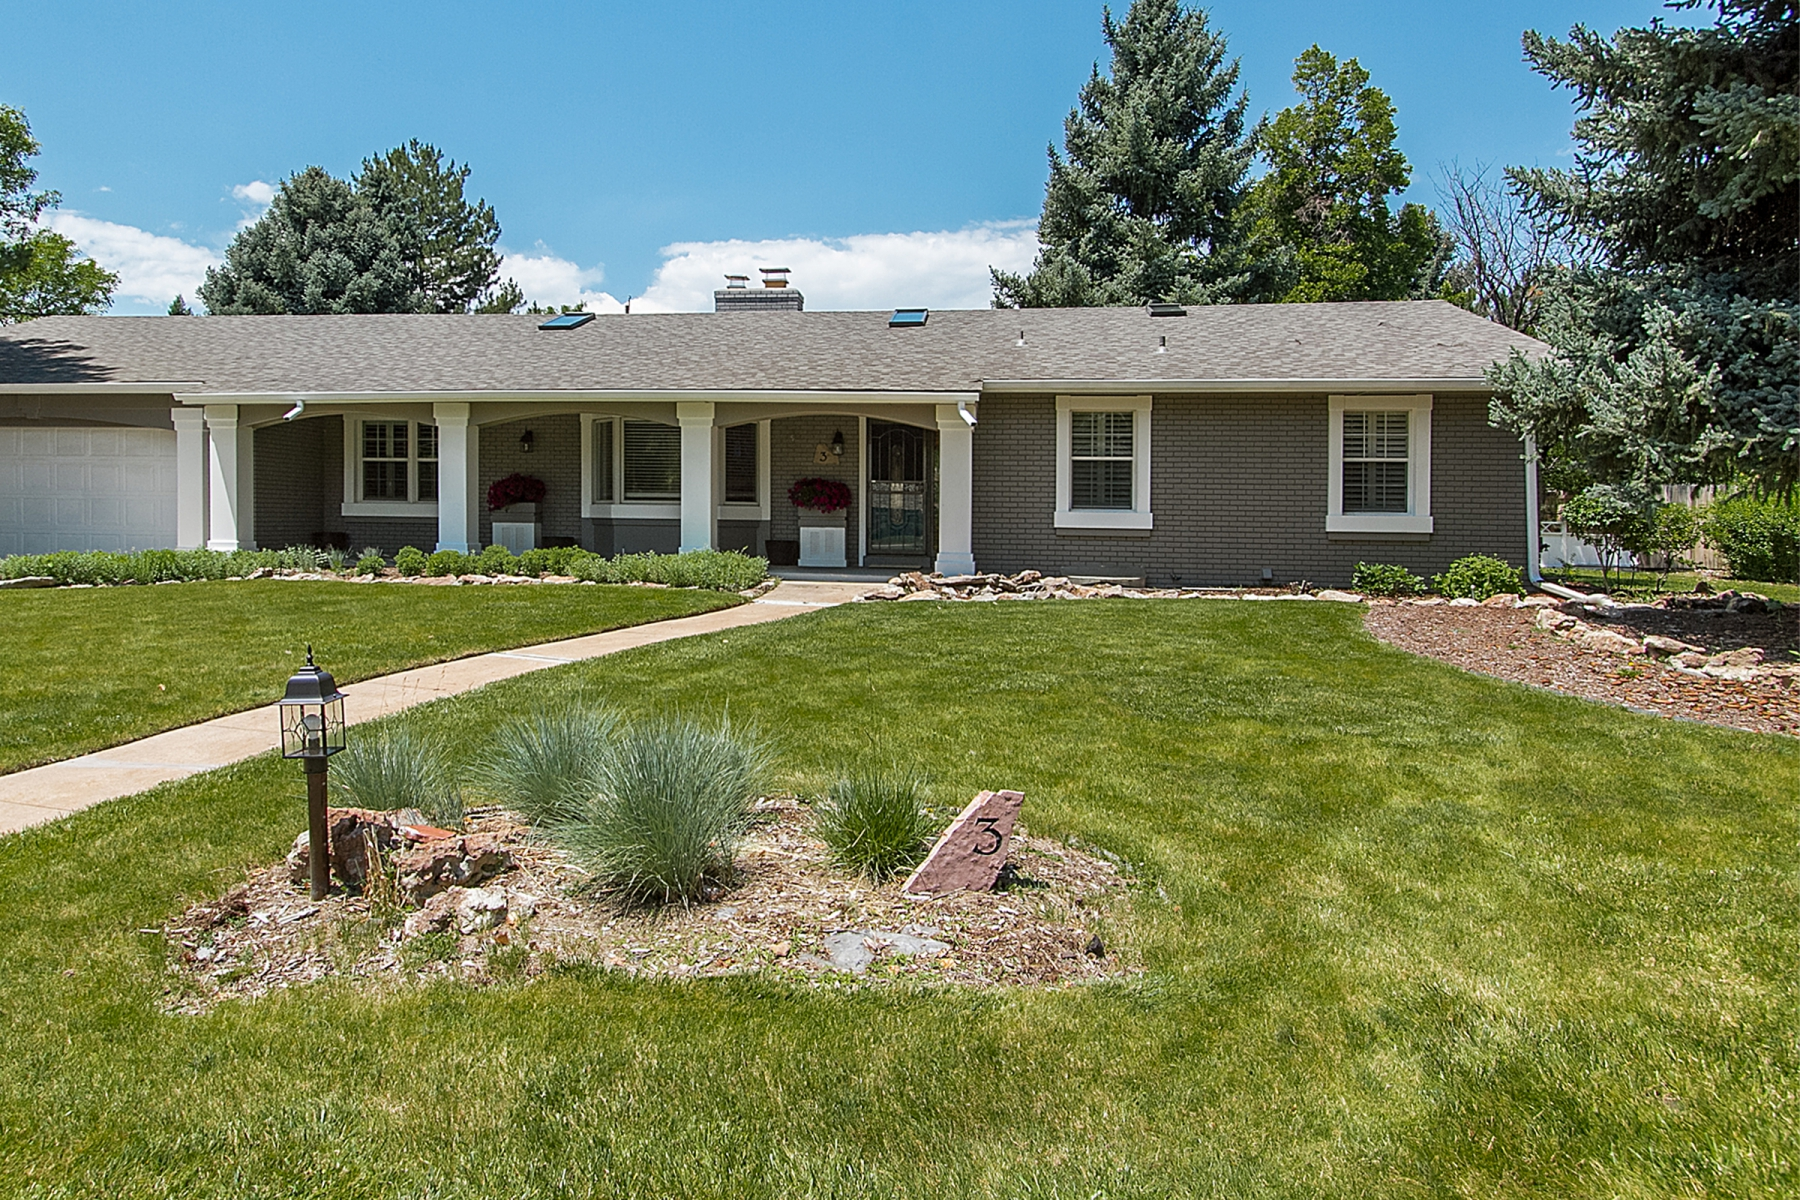 Single Family Home for Sale at Charming Four Bedroom Complete Remodel Ranch 3 Robincrest Lane Littleton, Colorado 80123 United States